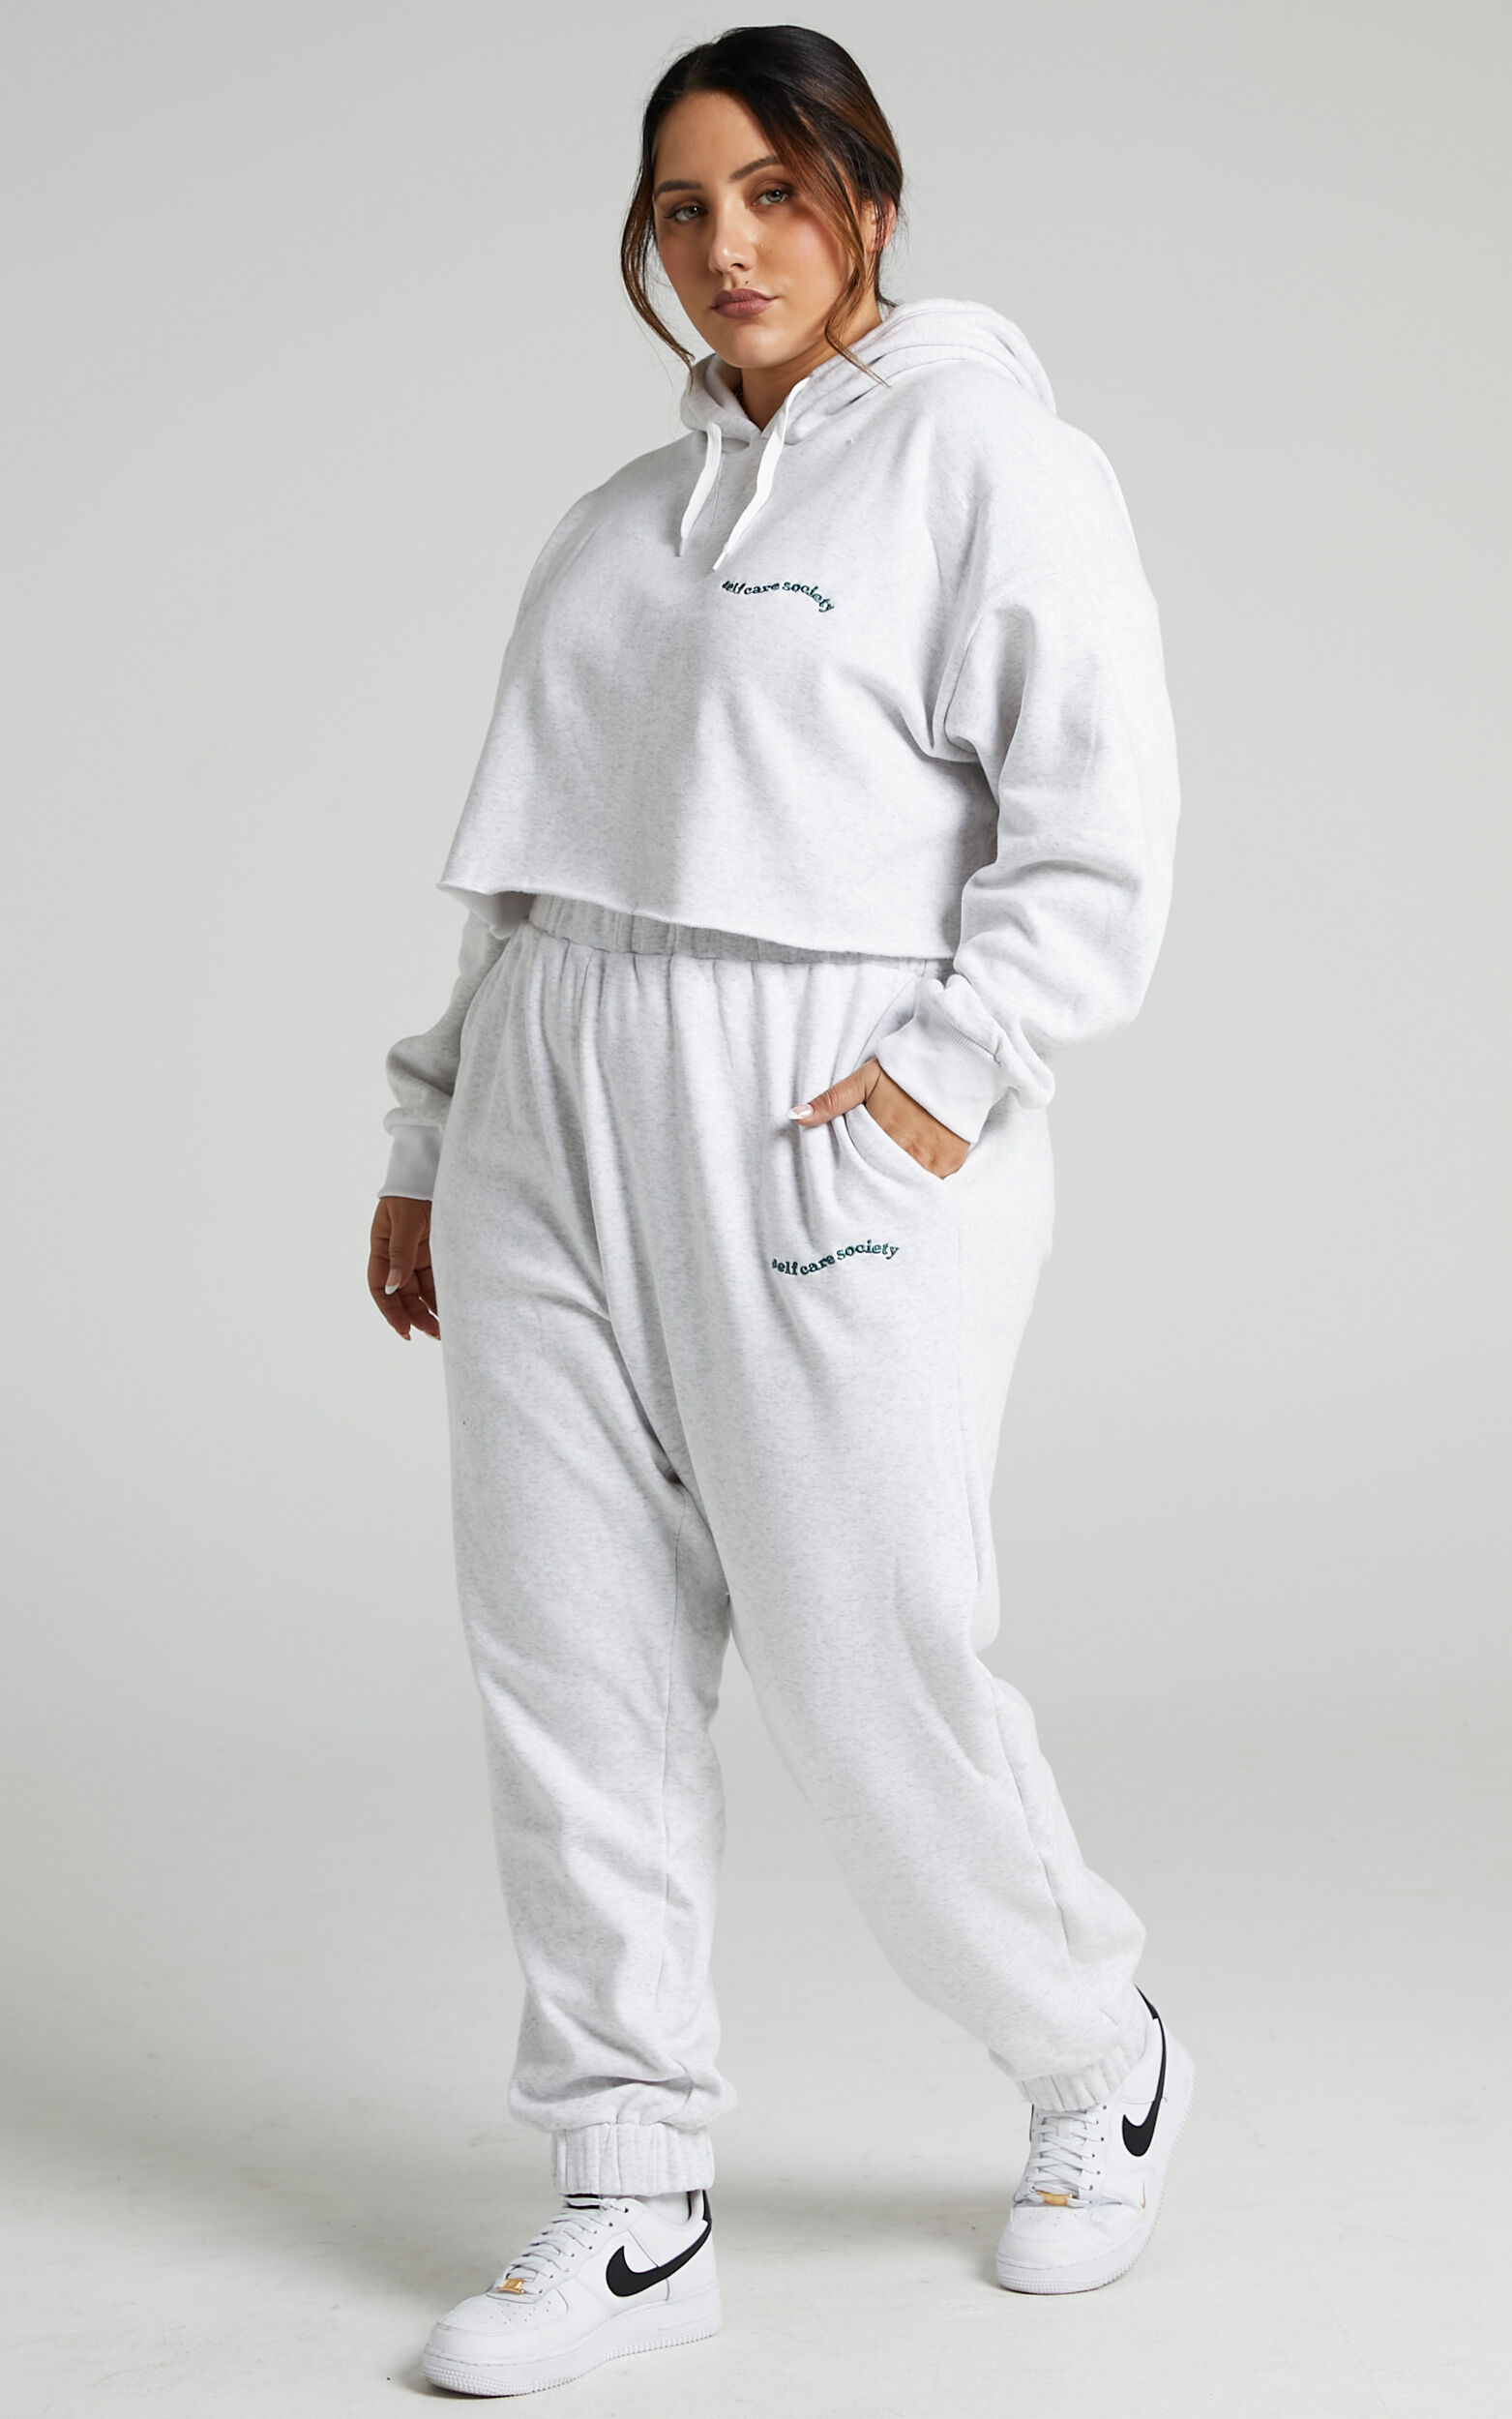 Sunday Society Club - Marianne Crop Hoodie in White Marle - 04, WHT1, super-hi-res image number null